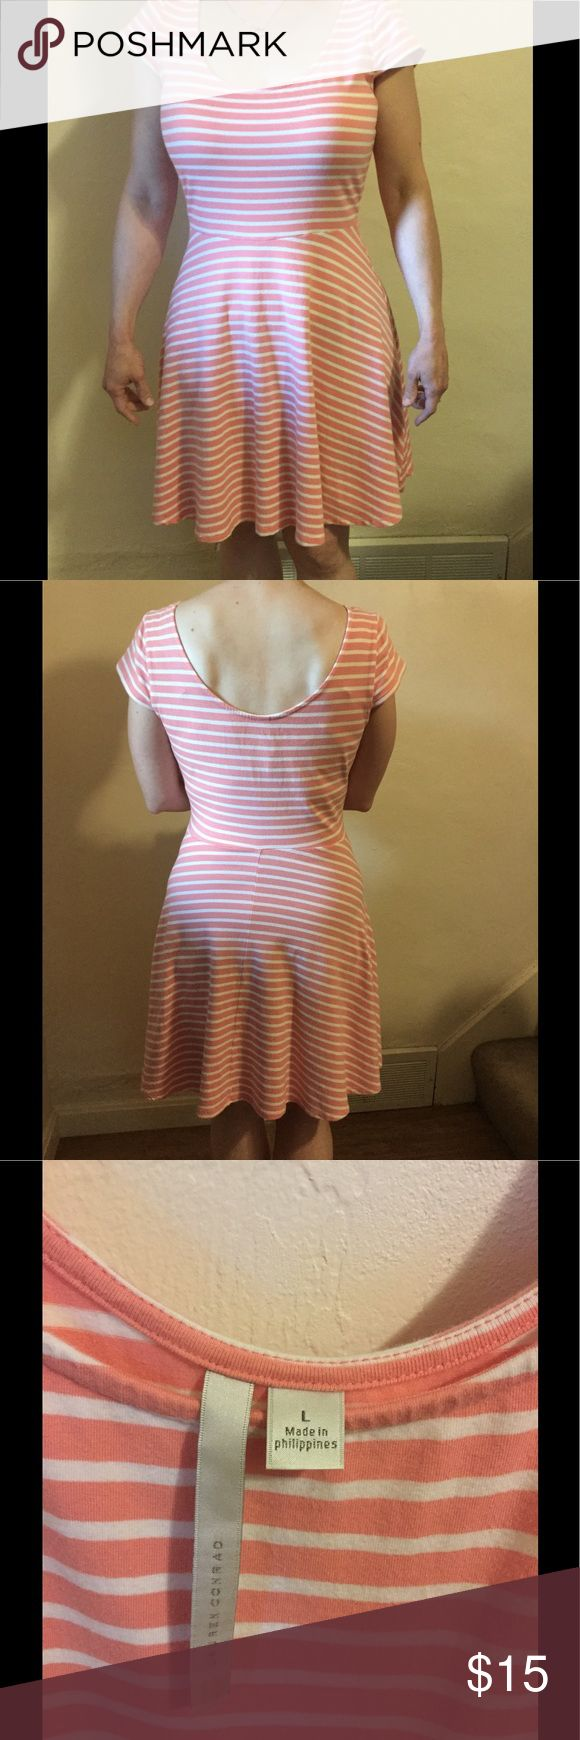 Stretch Jersey Fit & Flare Dress - Pre-Owned Very soft and comfortable stretch coral and white jersey dress, size large. Great condition! Great for summer! I hate to get rid of it, but it's too big for me now! *NOTE: since the dress is too big, I pinned it for the photos to give a better idea of fit. LC Lauren Conrad Dresses